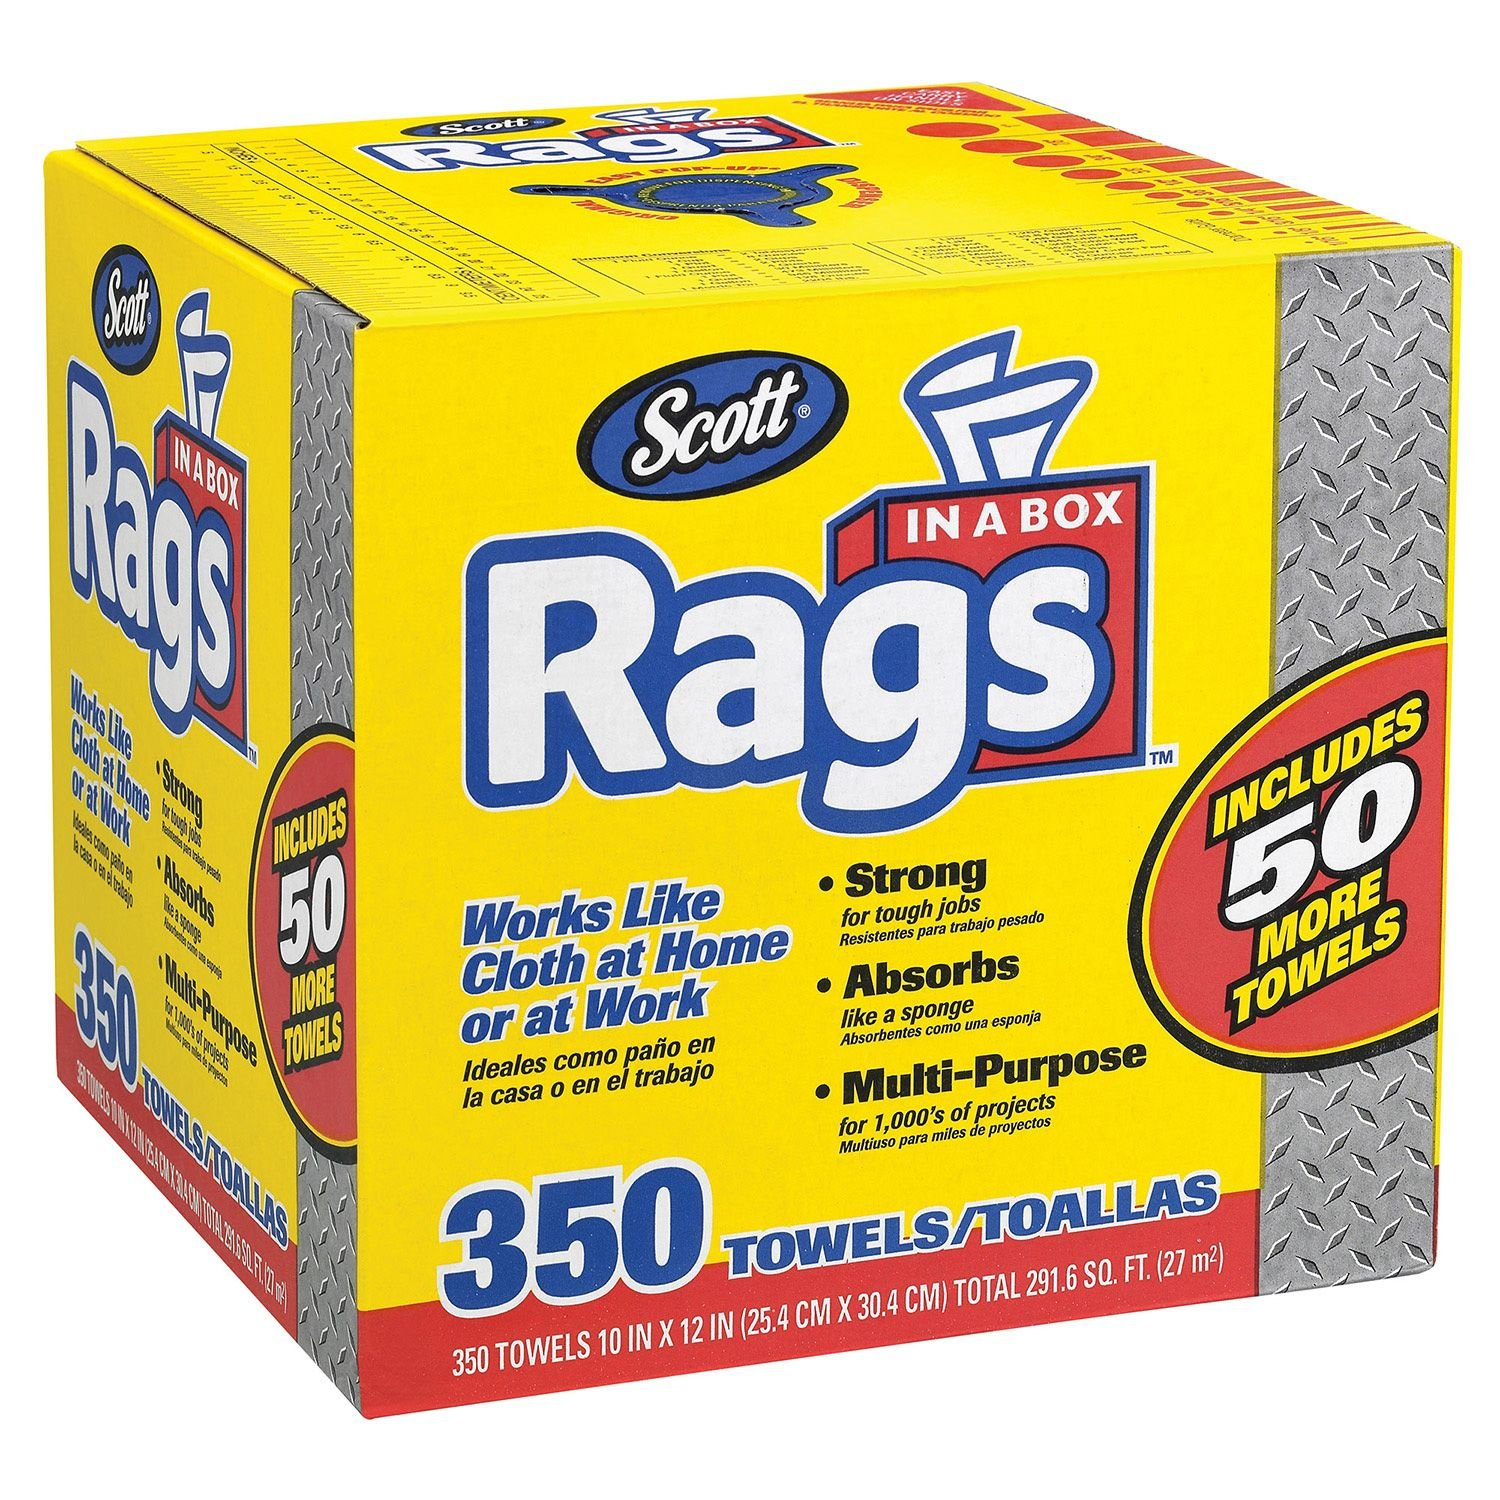 Doaaler(TM) Scott Shop Rags In A Box 350 Count White Soft and Low in Lint 75650 - New Item